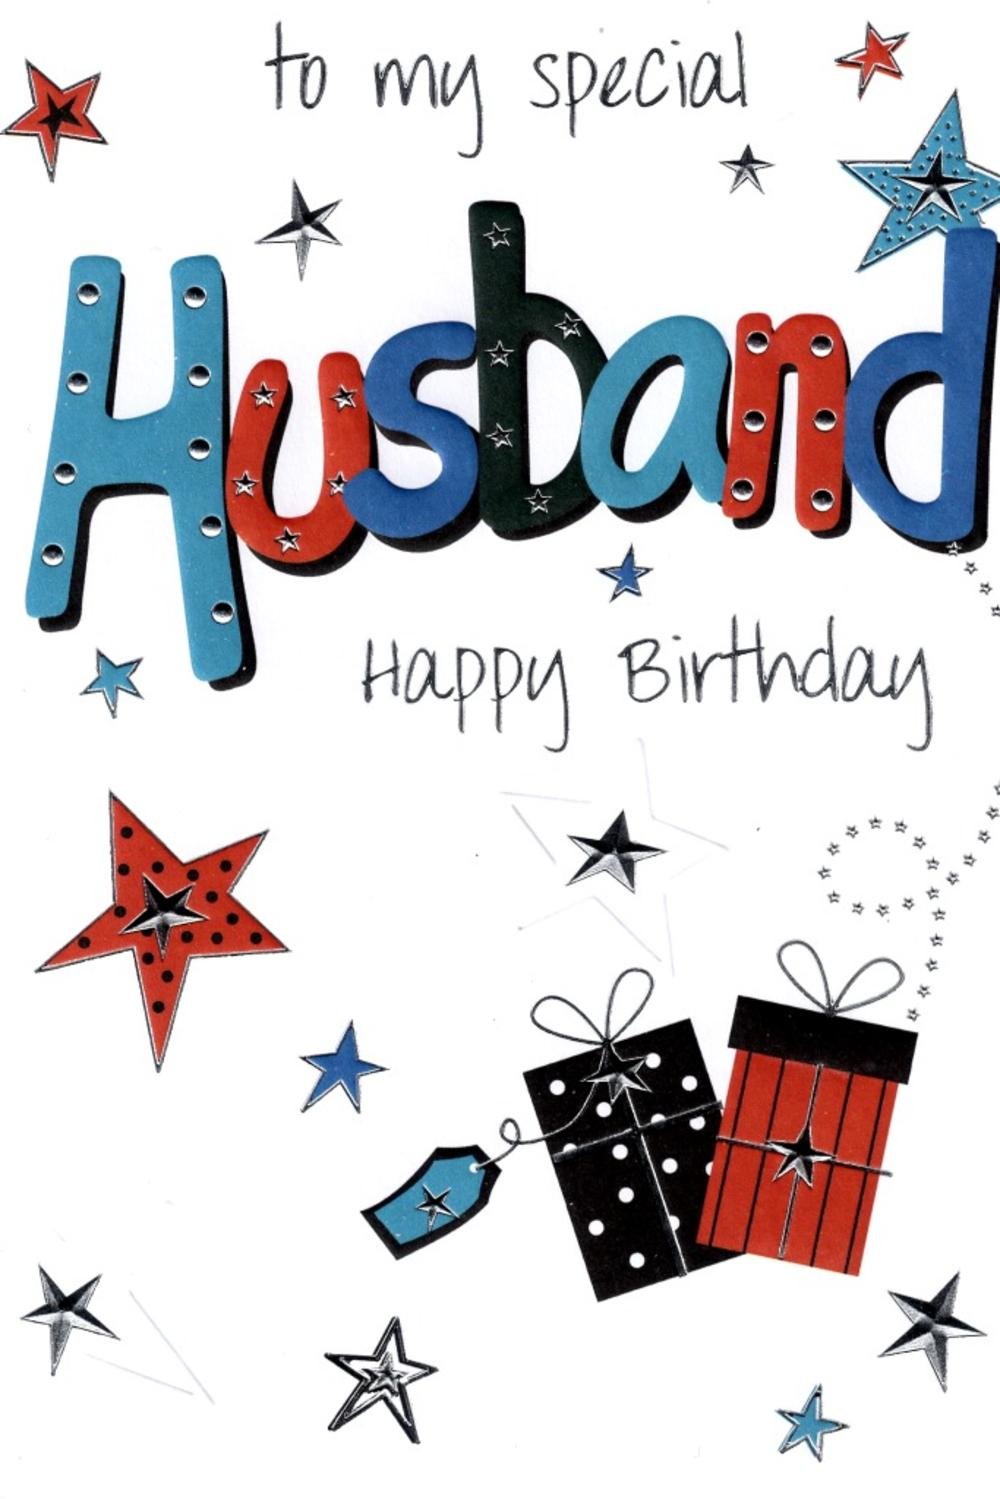 Husband Lovely Birthday Card